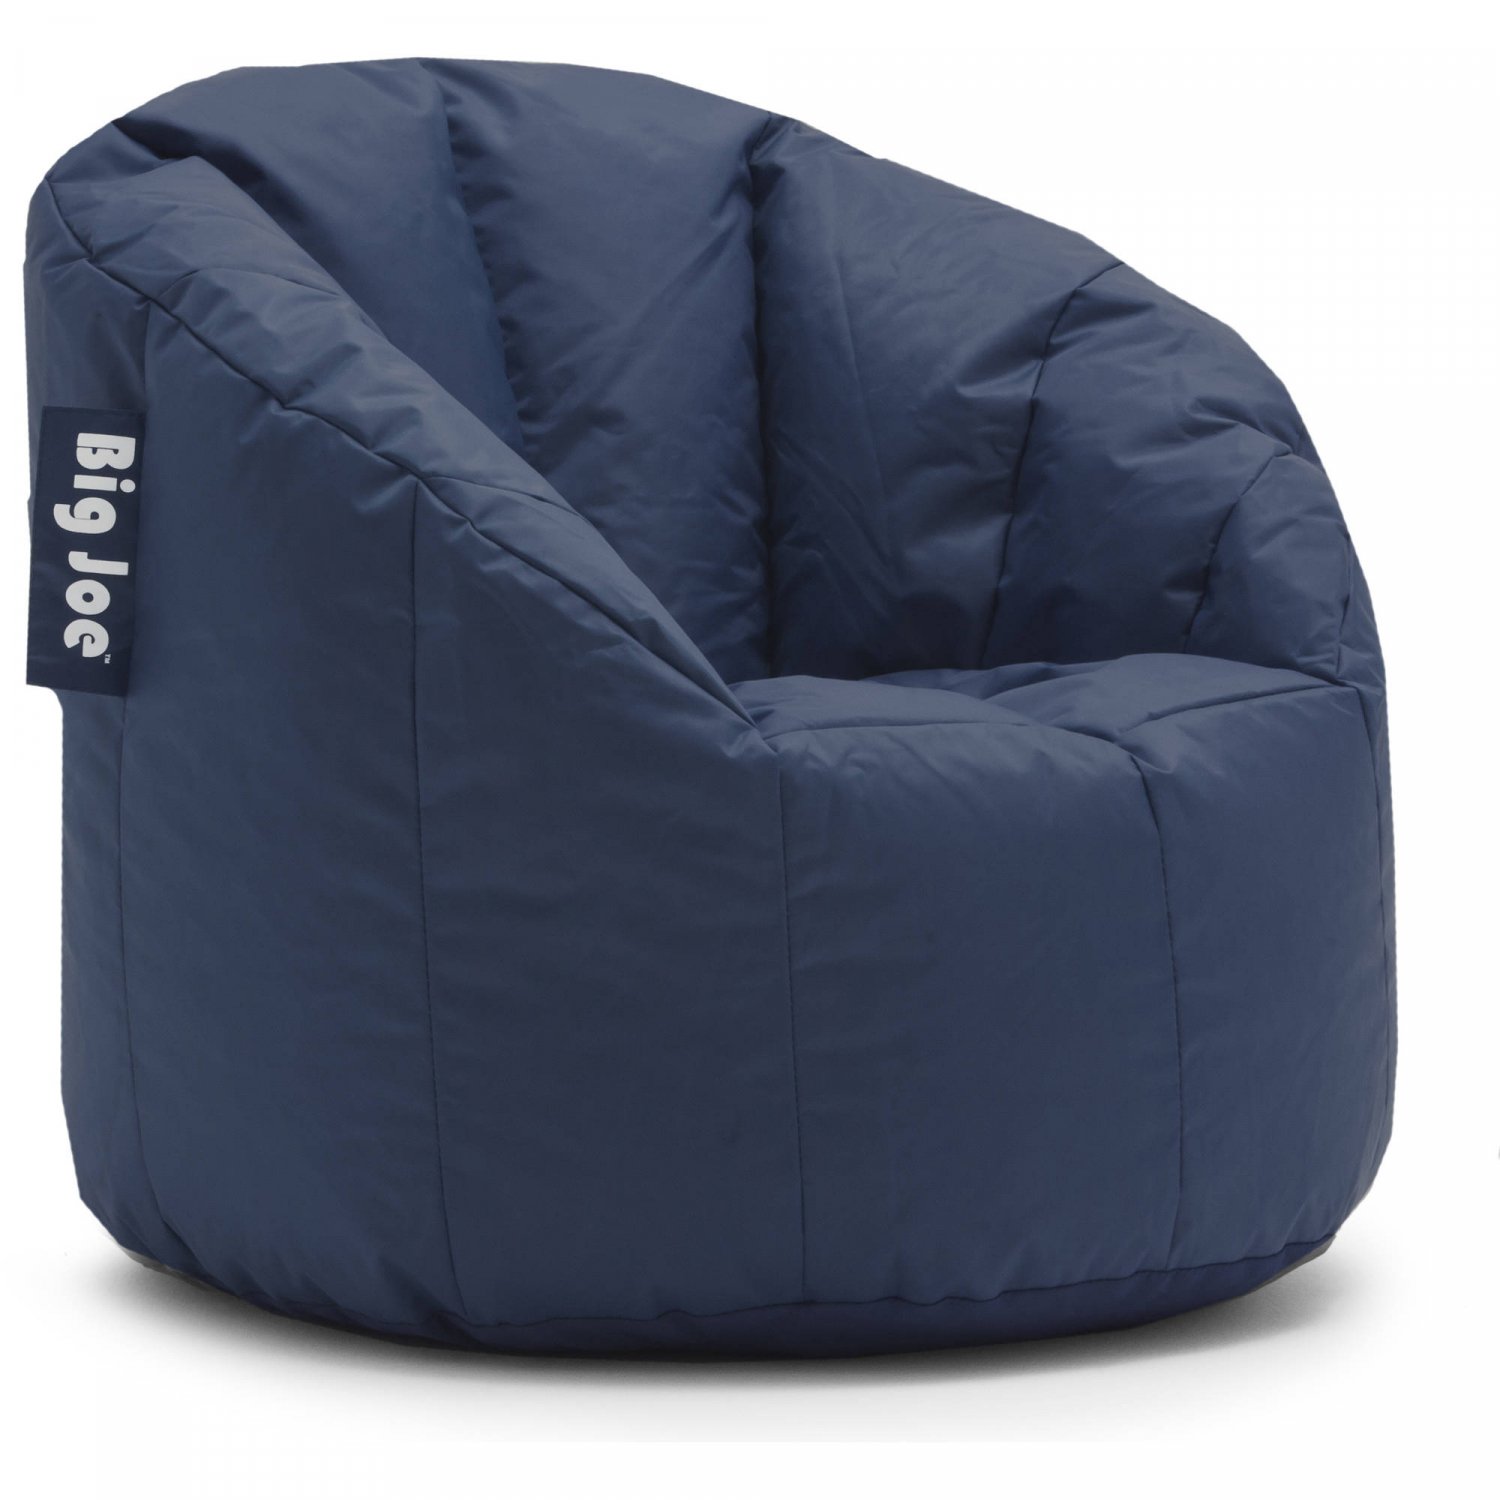 Big Joe Milano Bean Bag Chair Comfort For Kids And Adults